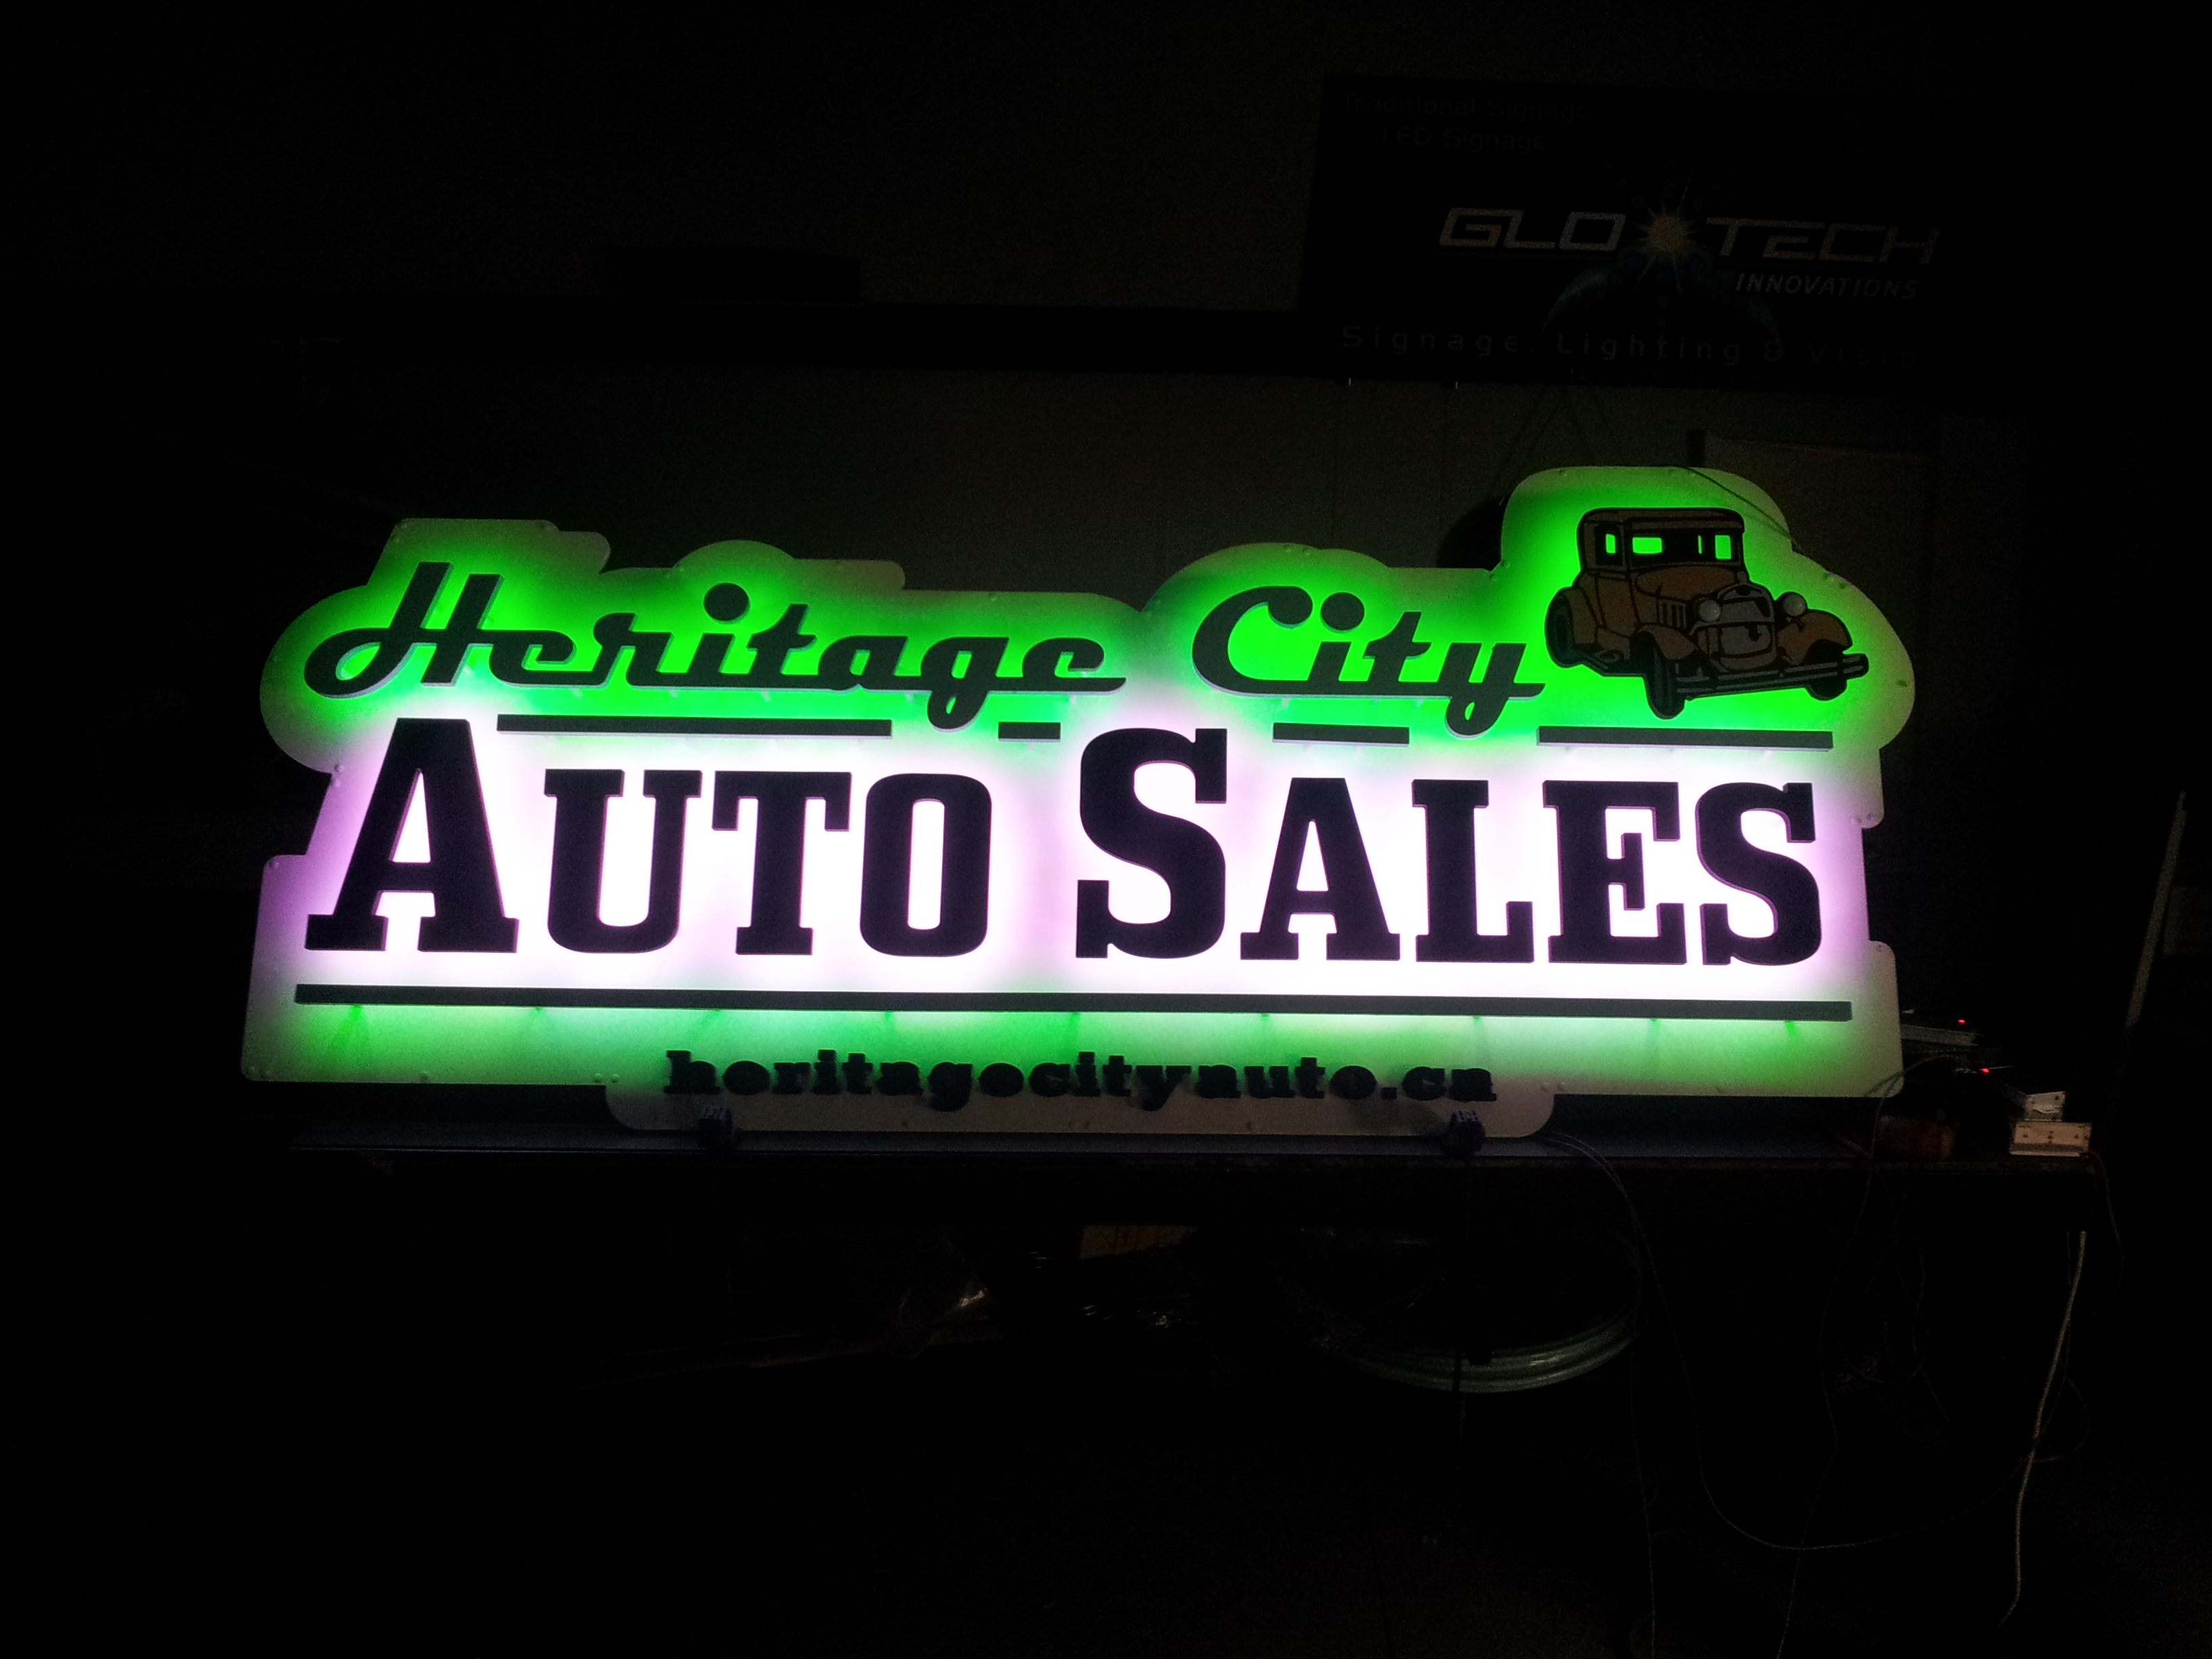 Heritage City Auto Sales Halo Sign